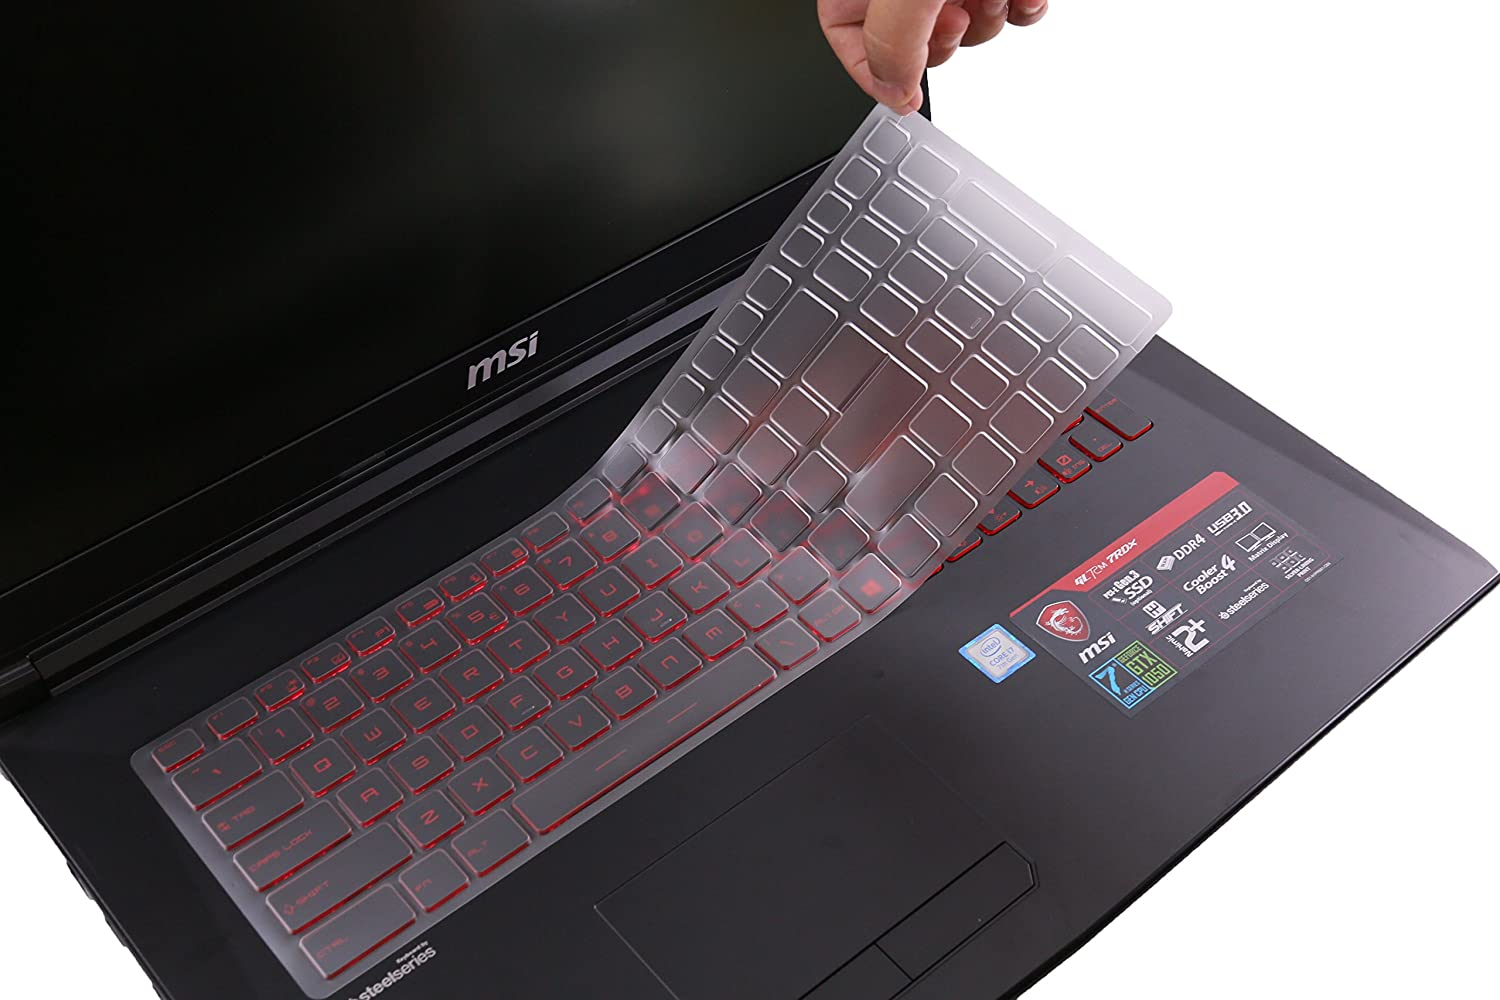 Leze - Keyboard Cover for MSI GS63 GF62 GE63VR GV62 GP63 GT63 GL63 WE63 WS63 GL72 GL72M GF72VR GE73VR GL73 GP73 WE73 GS73 GS73VR GT73 GT73VR GE75 GS75 GF75 WS75 WE75 Gaming Laptop - TPU